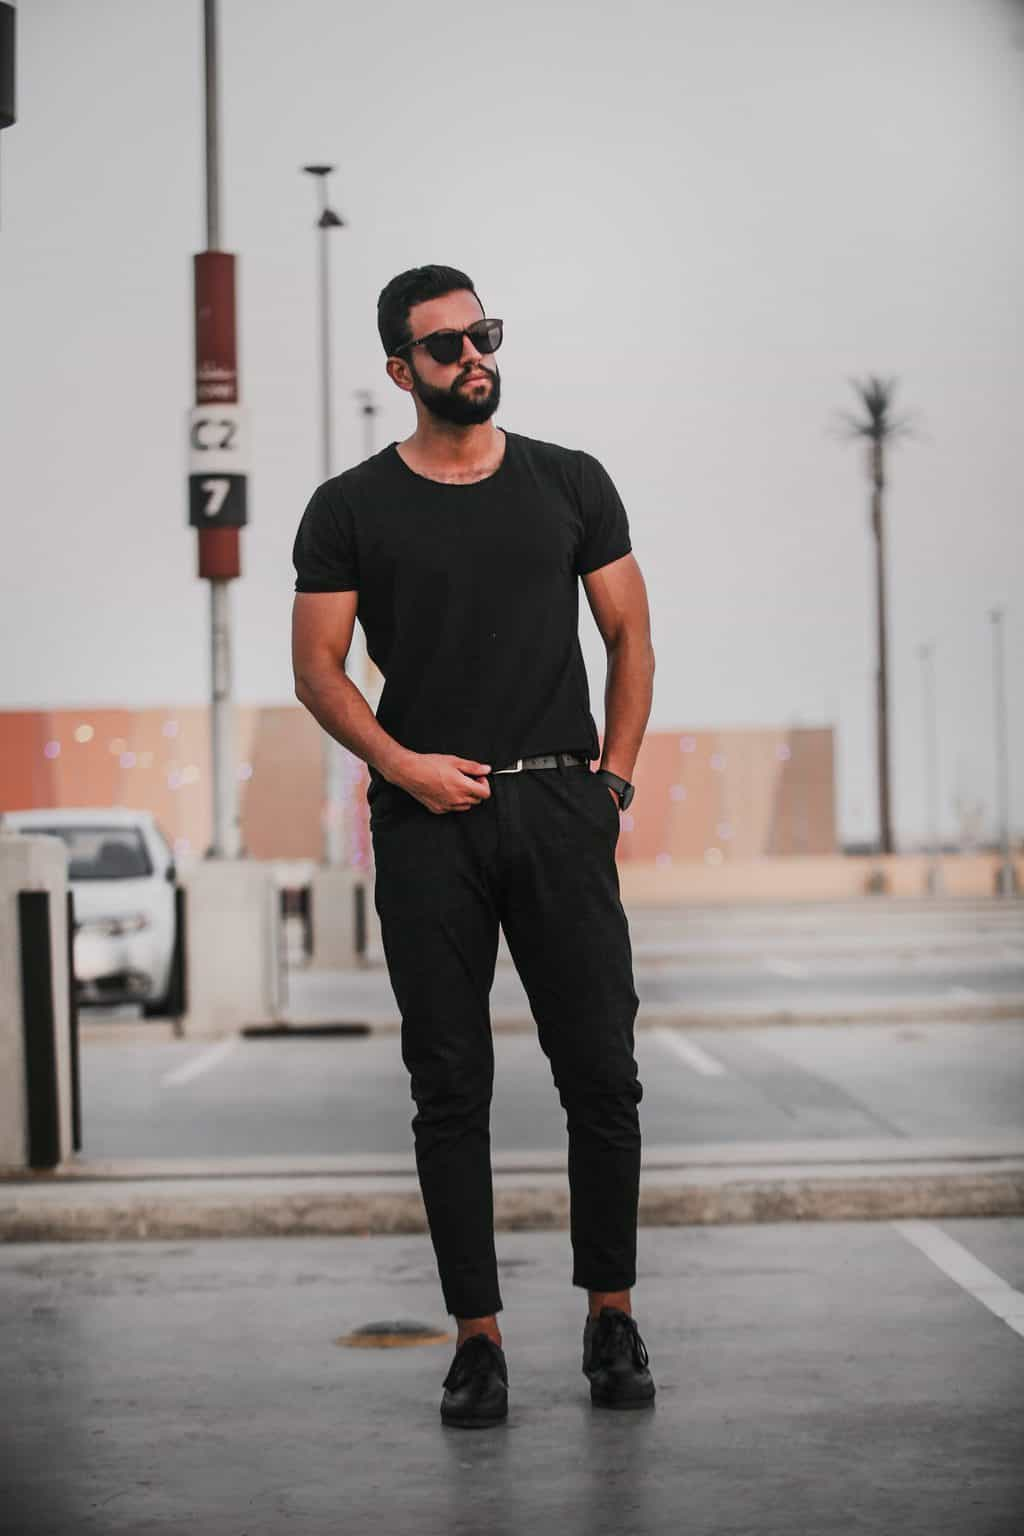 man-pure-black-attire